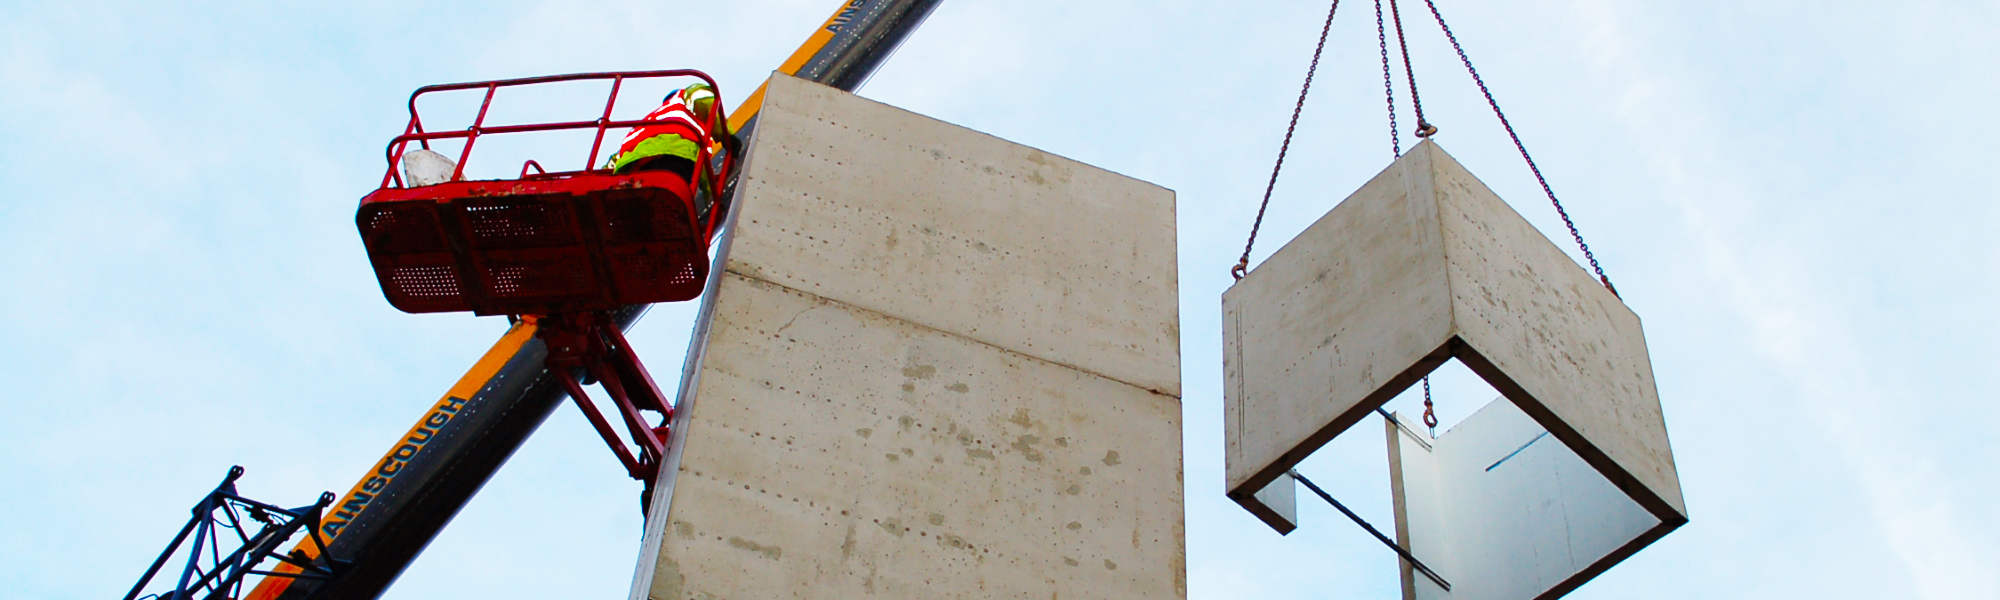 PCEs precast lift boxes in Hartlepool